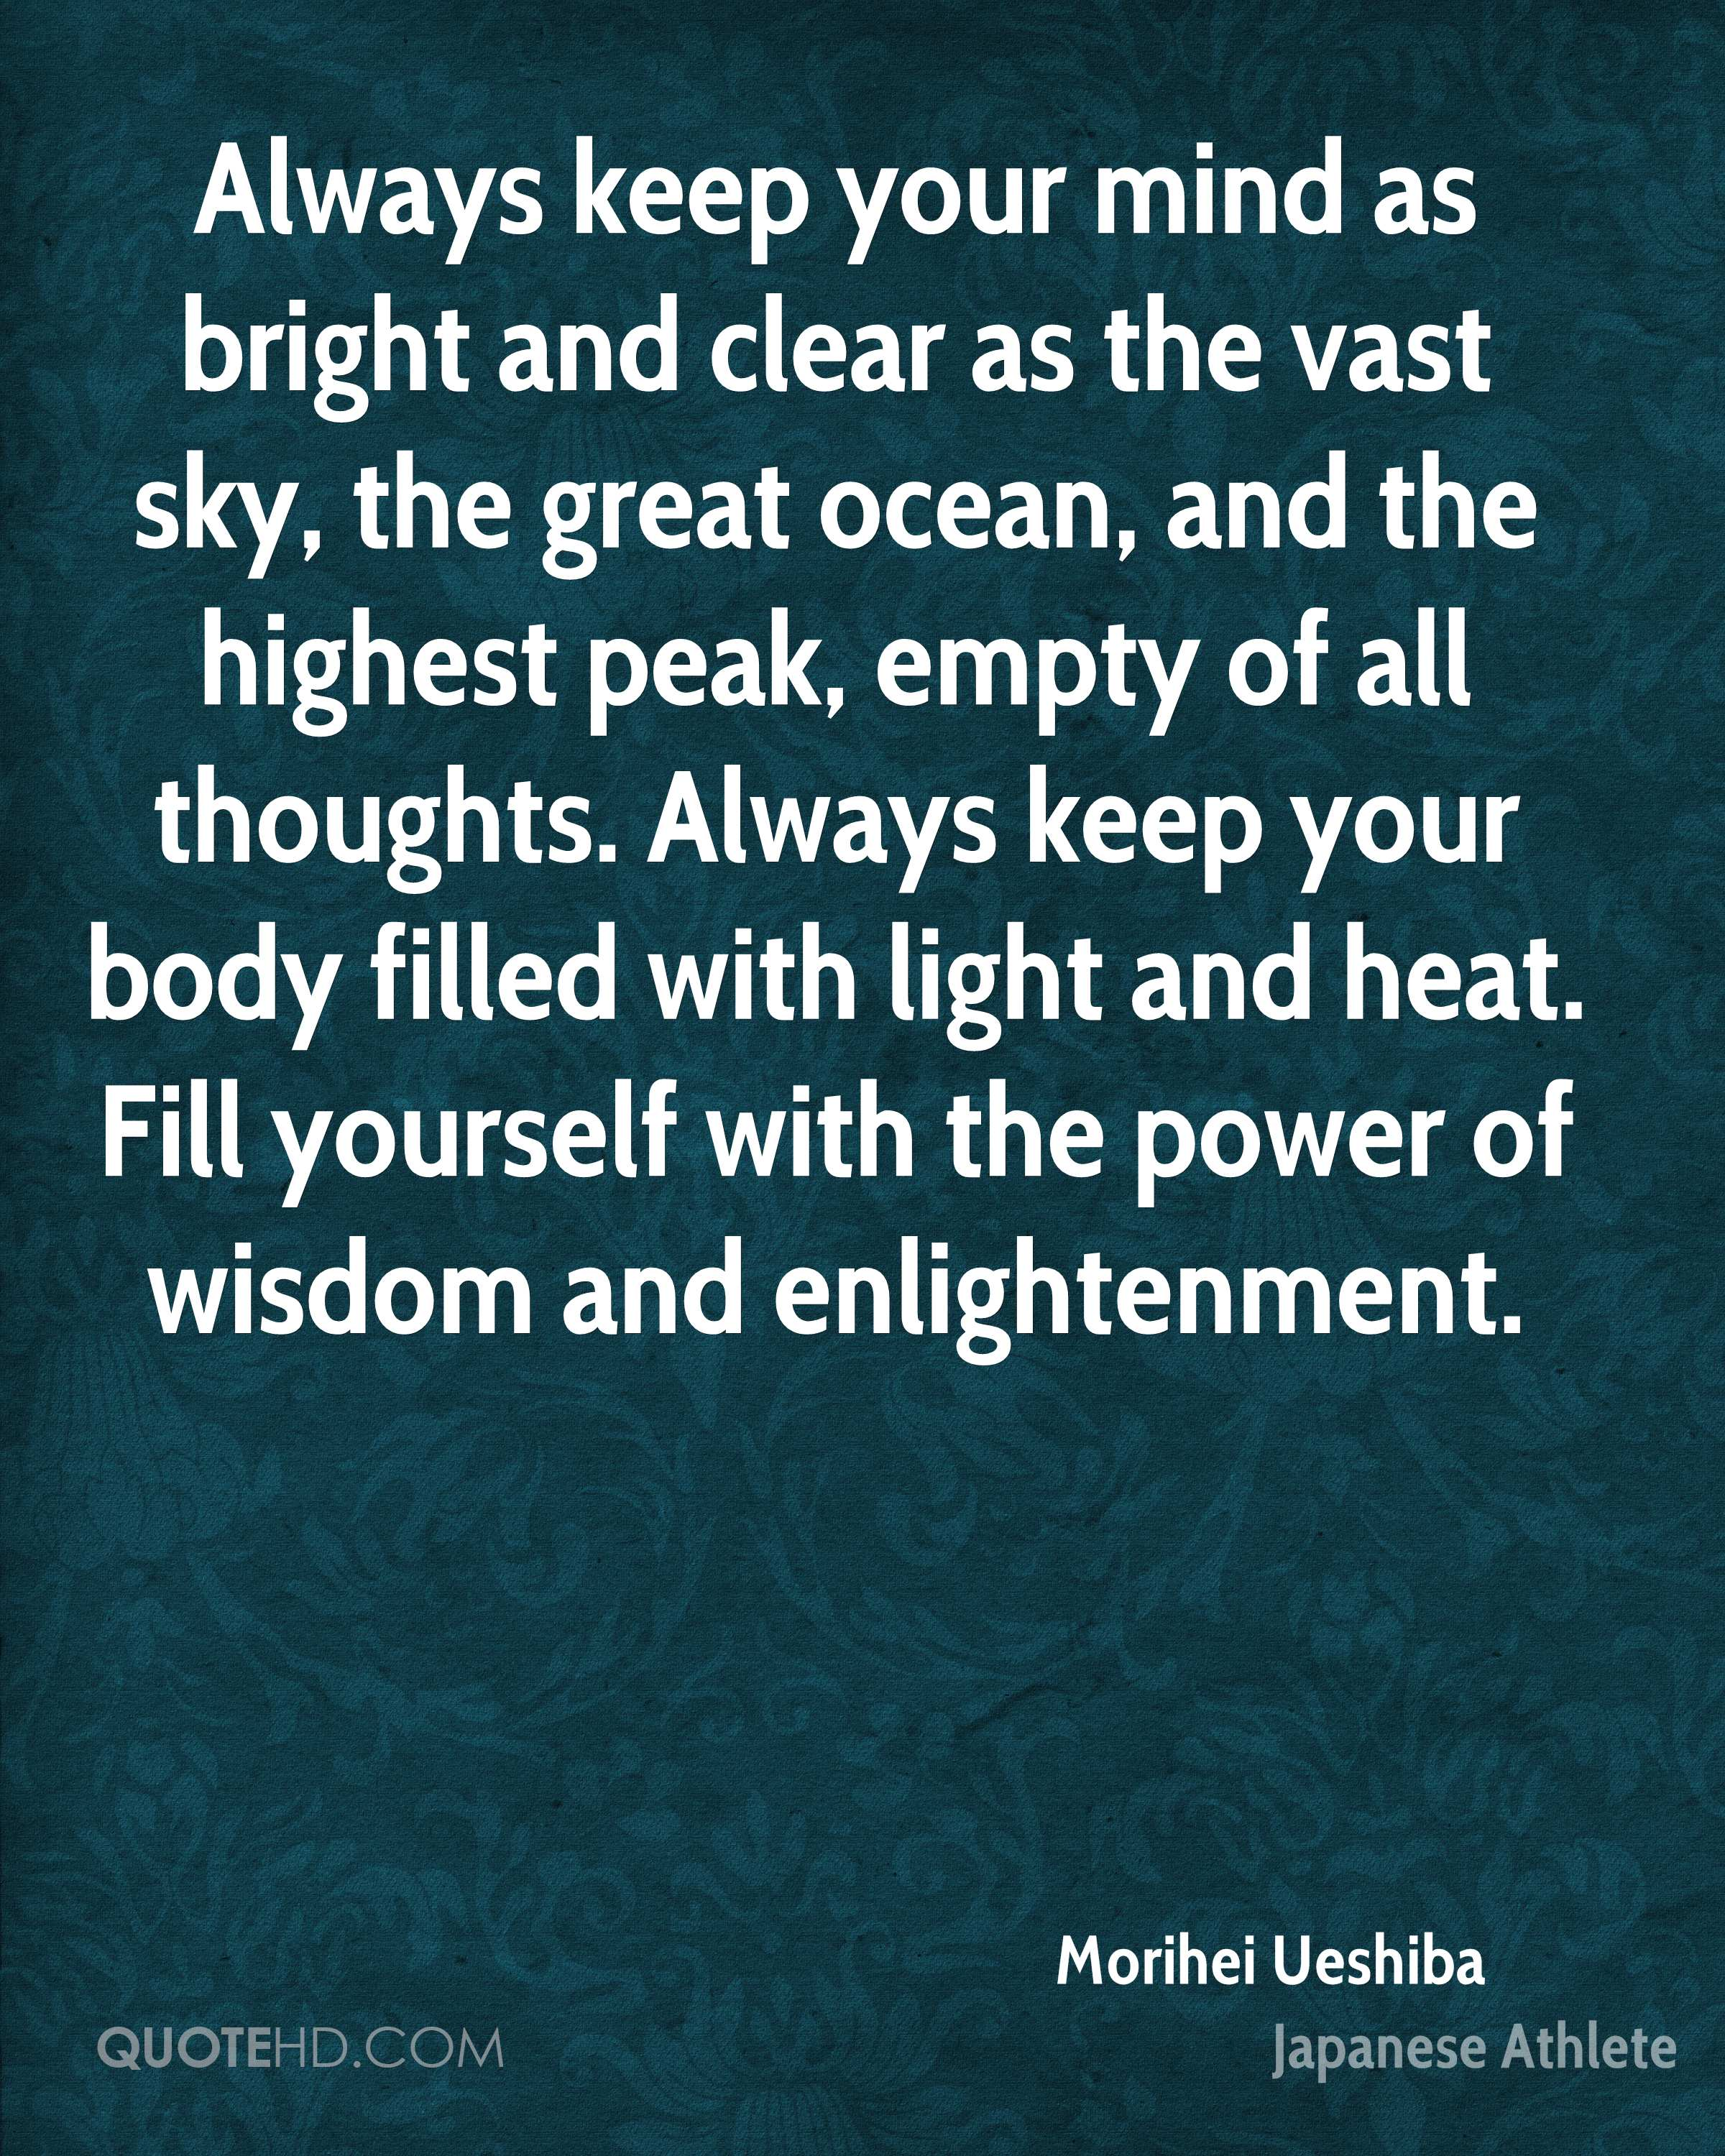 Always keep your mind as bright and clear as the vast sky, the great ocean, and the highest peak, empty of all thoughts. Always keep your body filled with light and heat. Fill yourself with the power of wisdom and enlightenment.